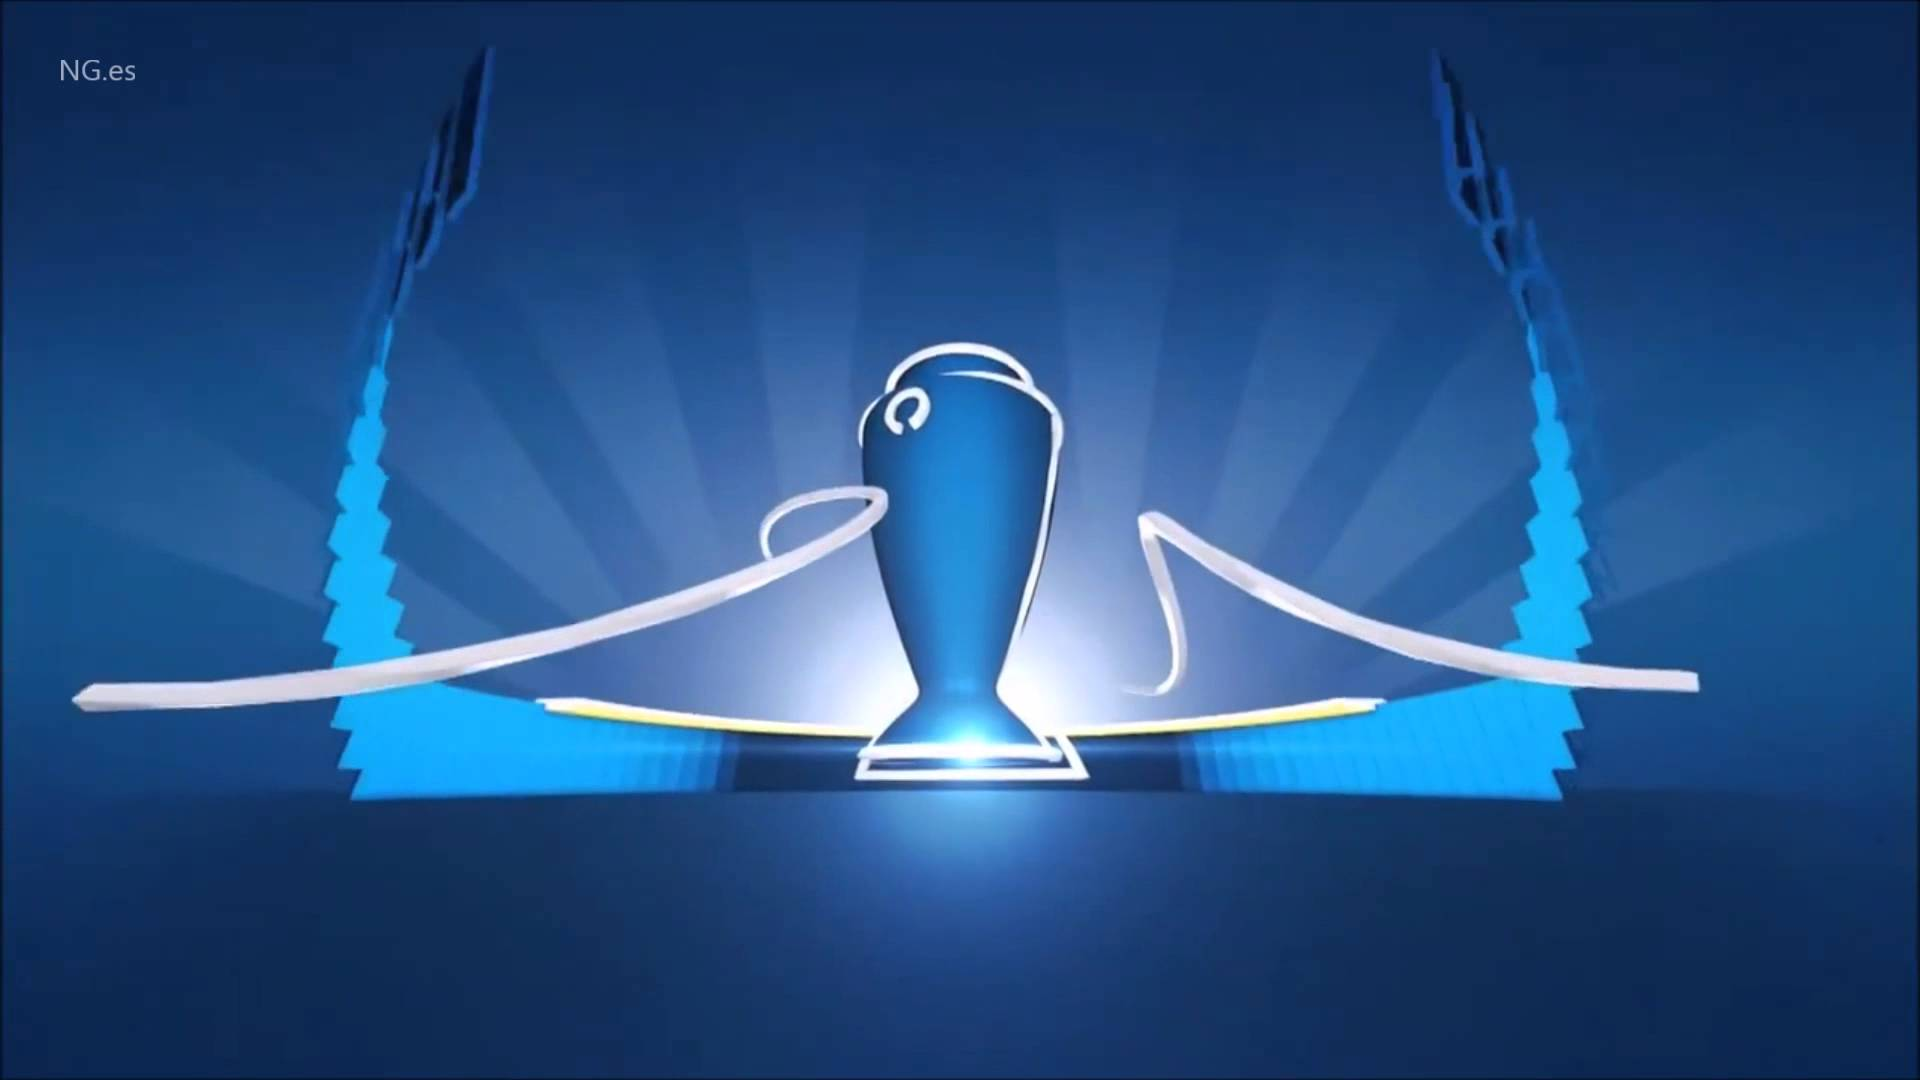 UEFA Champions League Heineken Wallpaper 2016 UEFA 1920x1080